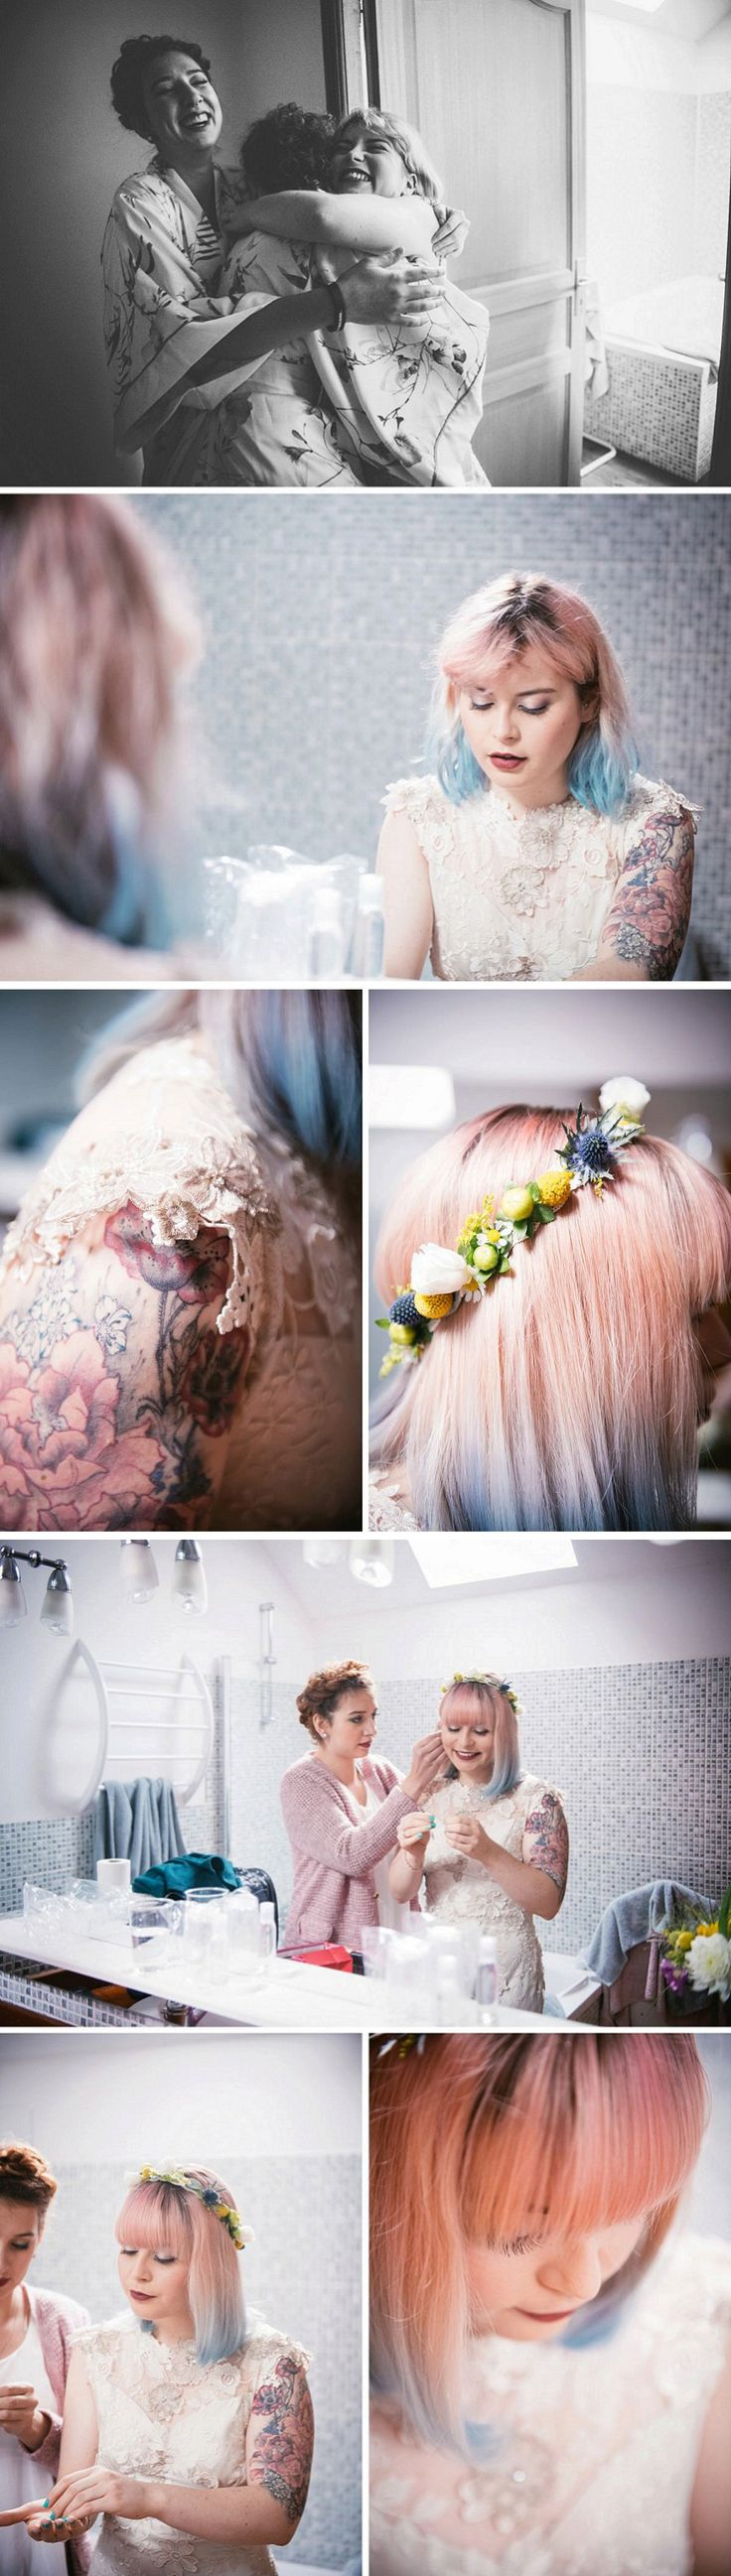 Indie bride with pink and blue hair - tattoeed bride - alternative bride and rock n roll wedding photographer - Zephyr & Luna photograhy